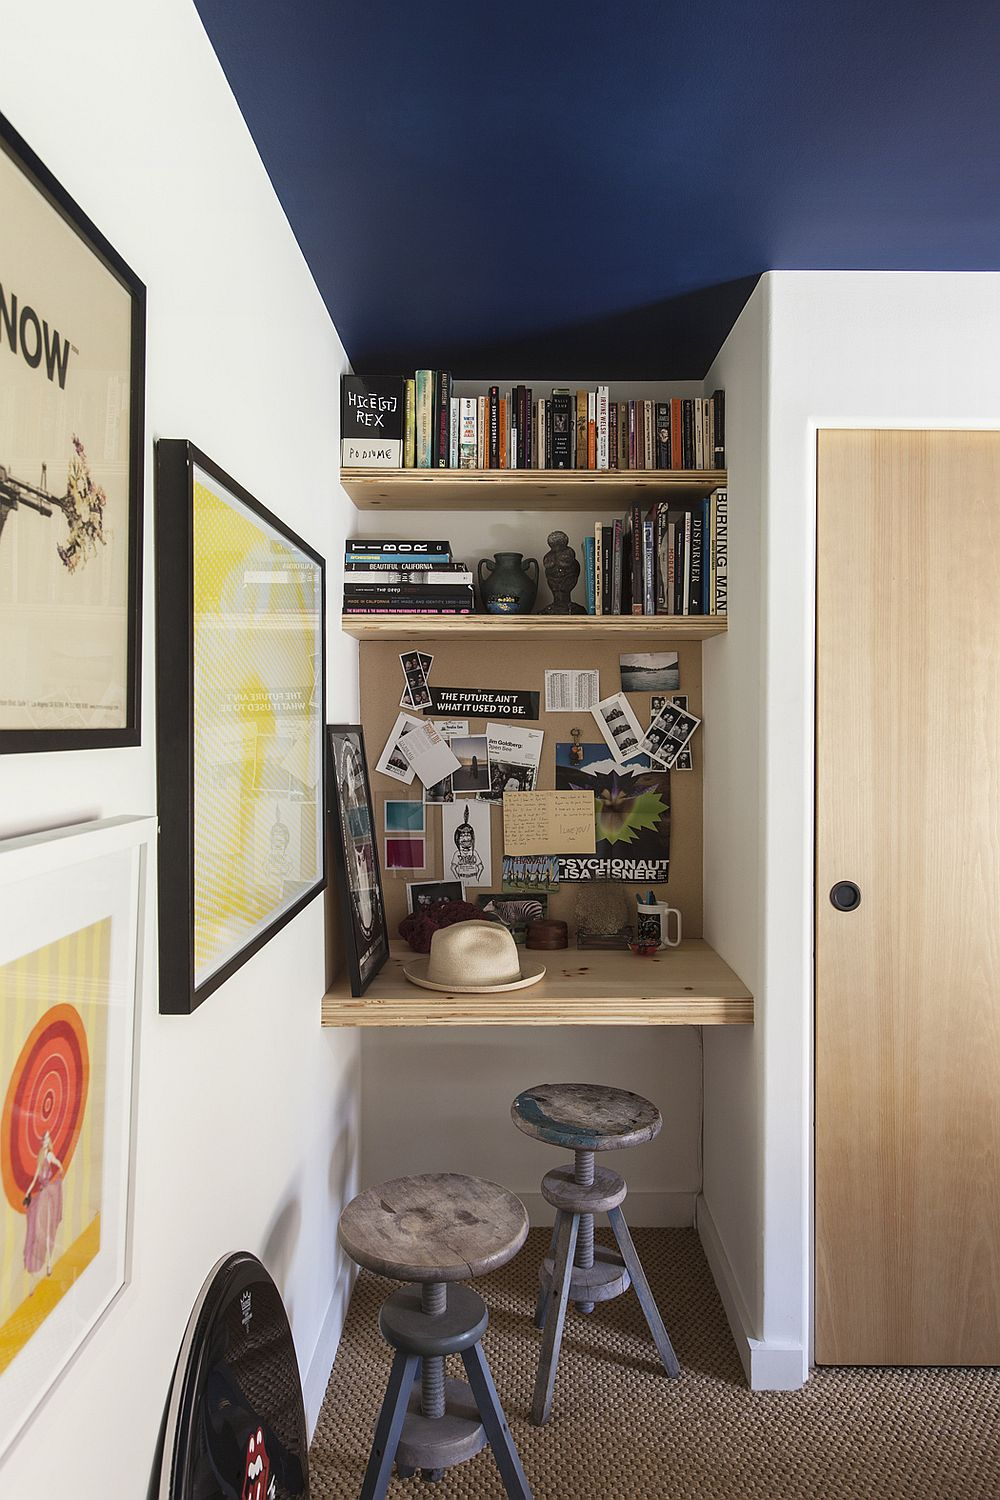 With a wooden plank and simple DIY skills you can turn the bedroo niche into a workspace